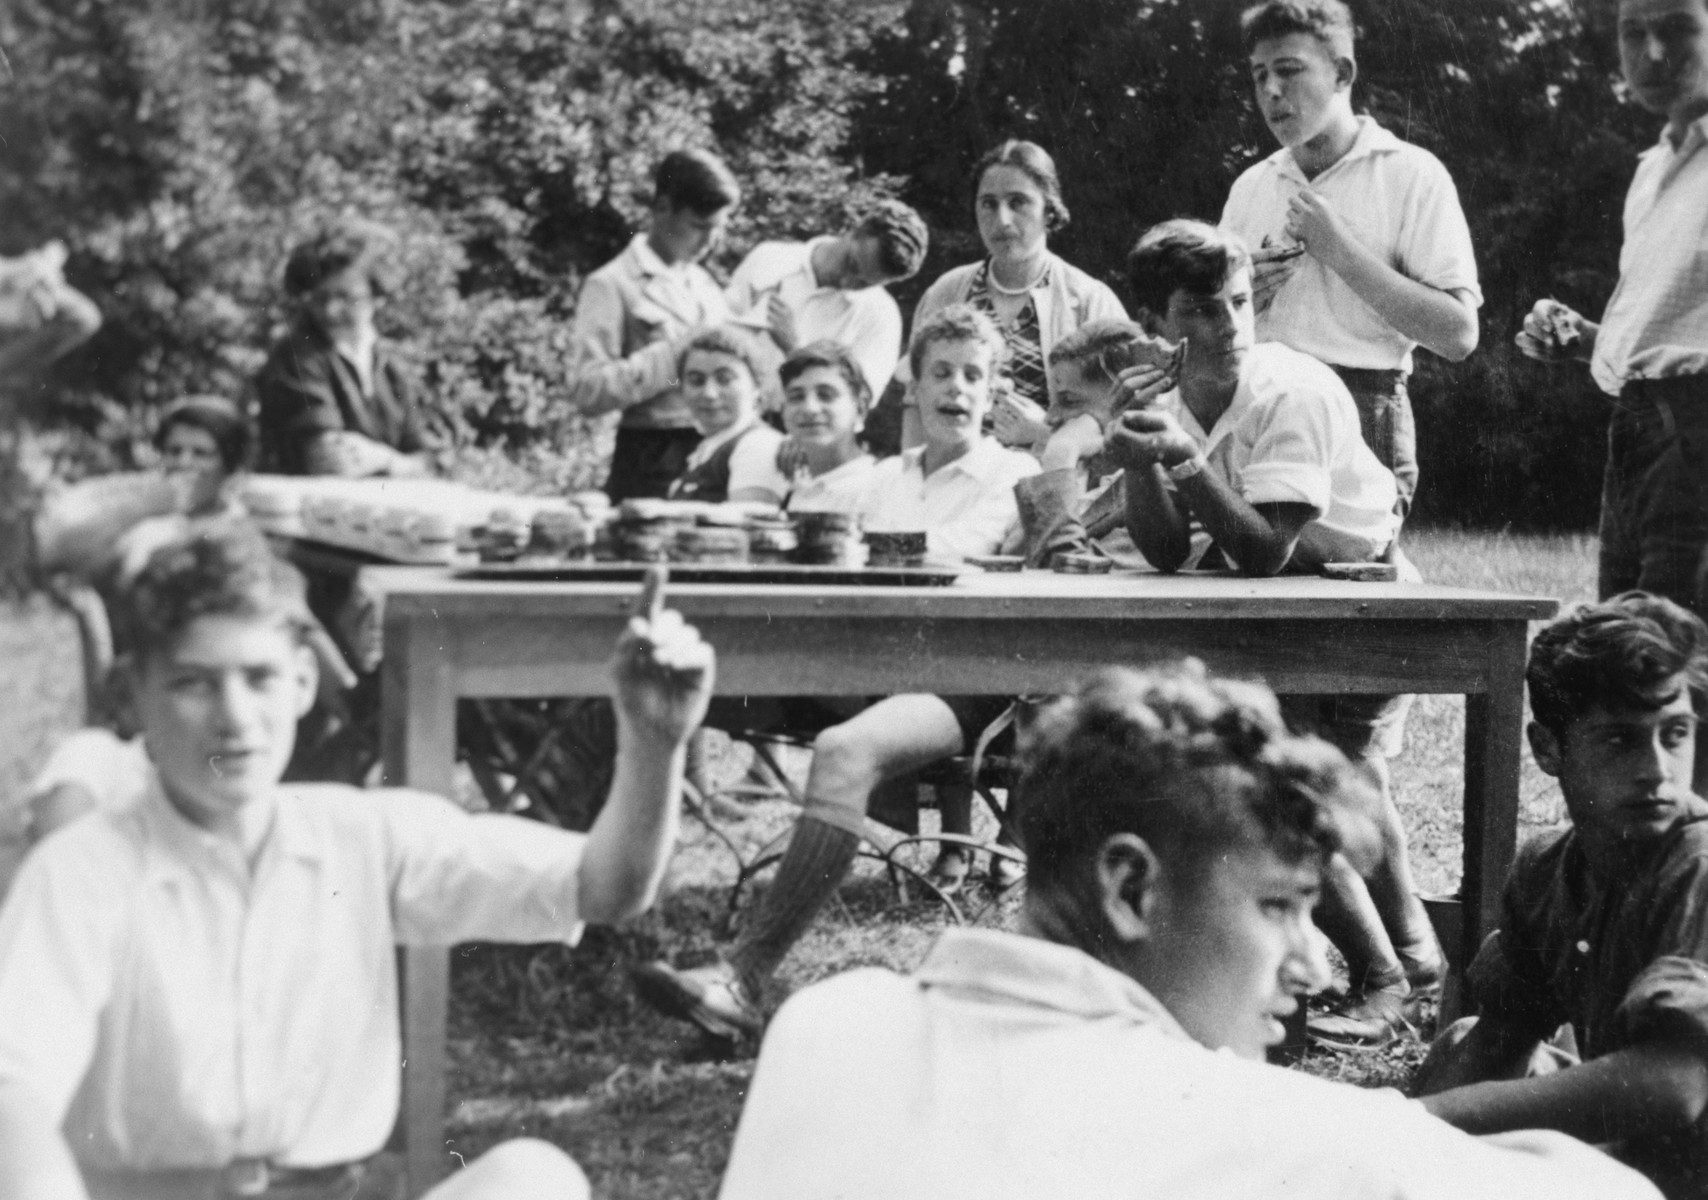 Jewish youth eat sandwiches outdoors at the Gross Breesen agricultrual training center.